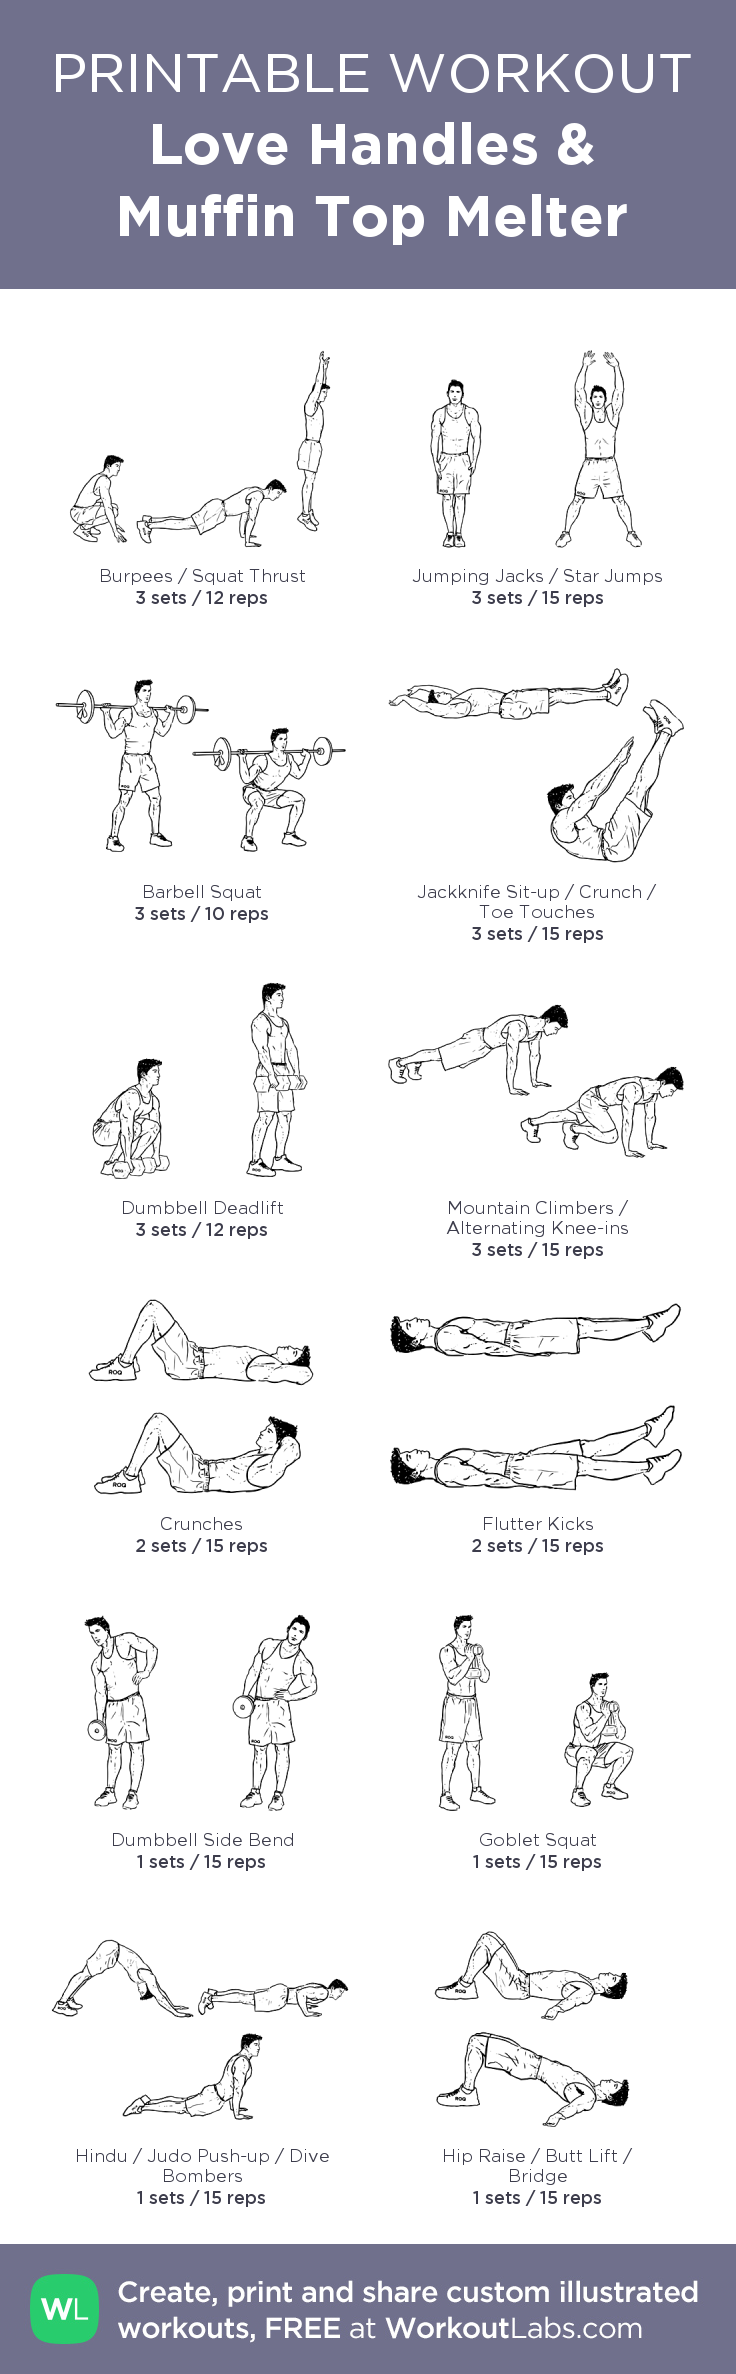 Love Handles & Muffin Top Melter: my visual workout ...